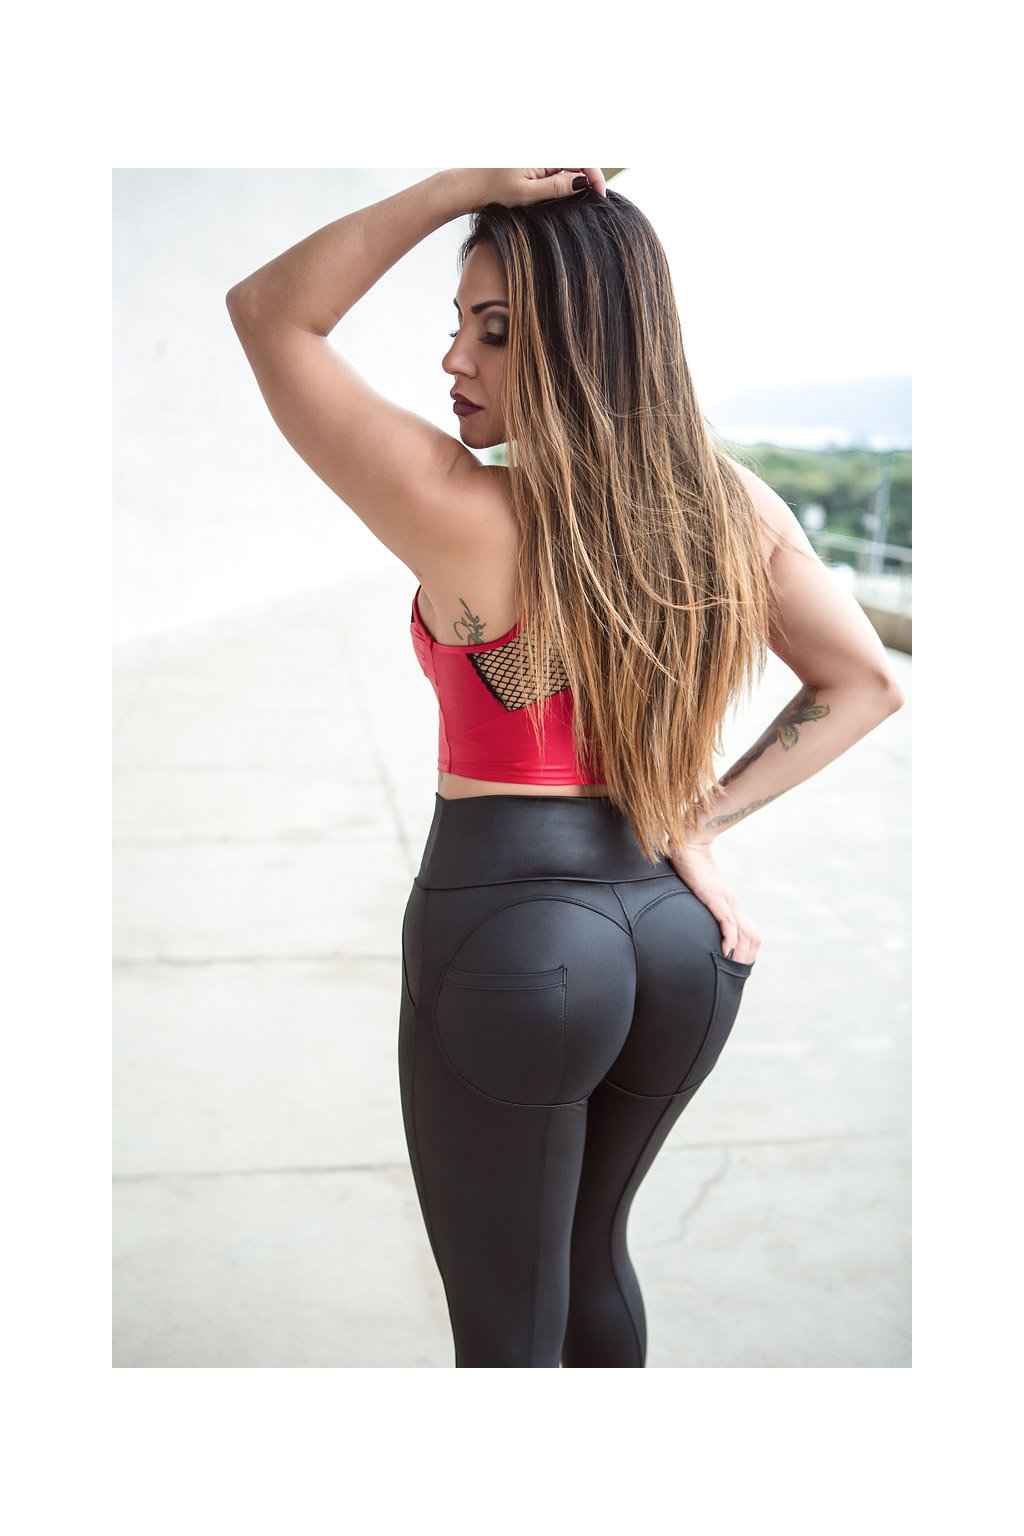 calca legging feminina pushup eclipse dynamite 119905 800x1200